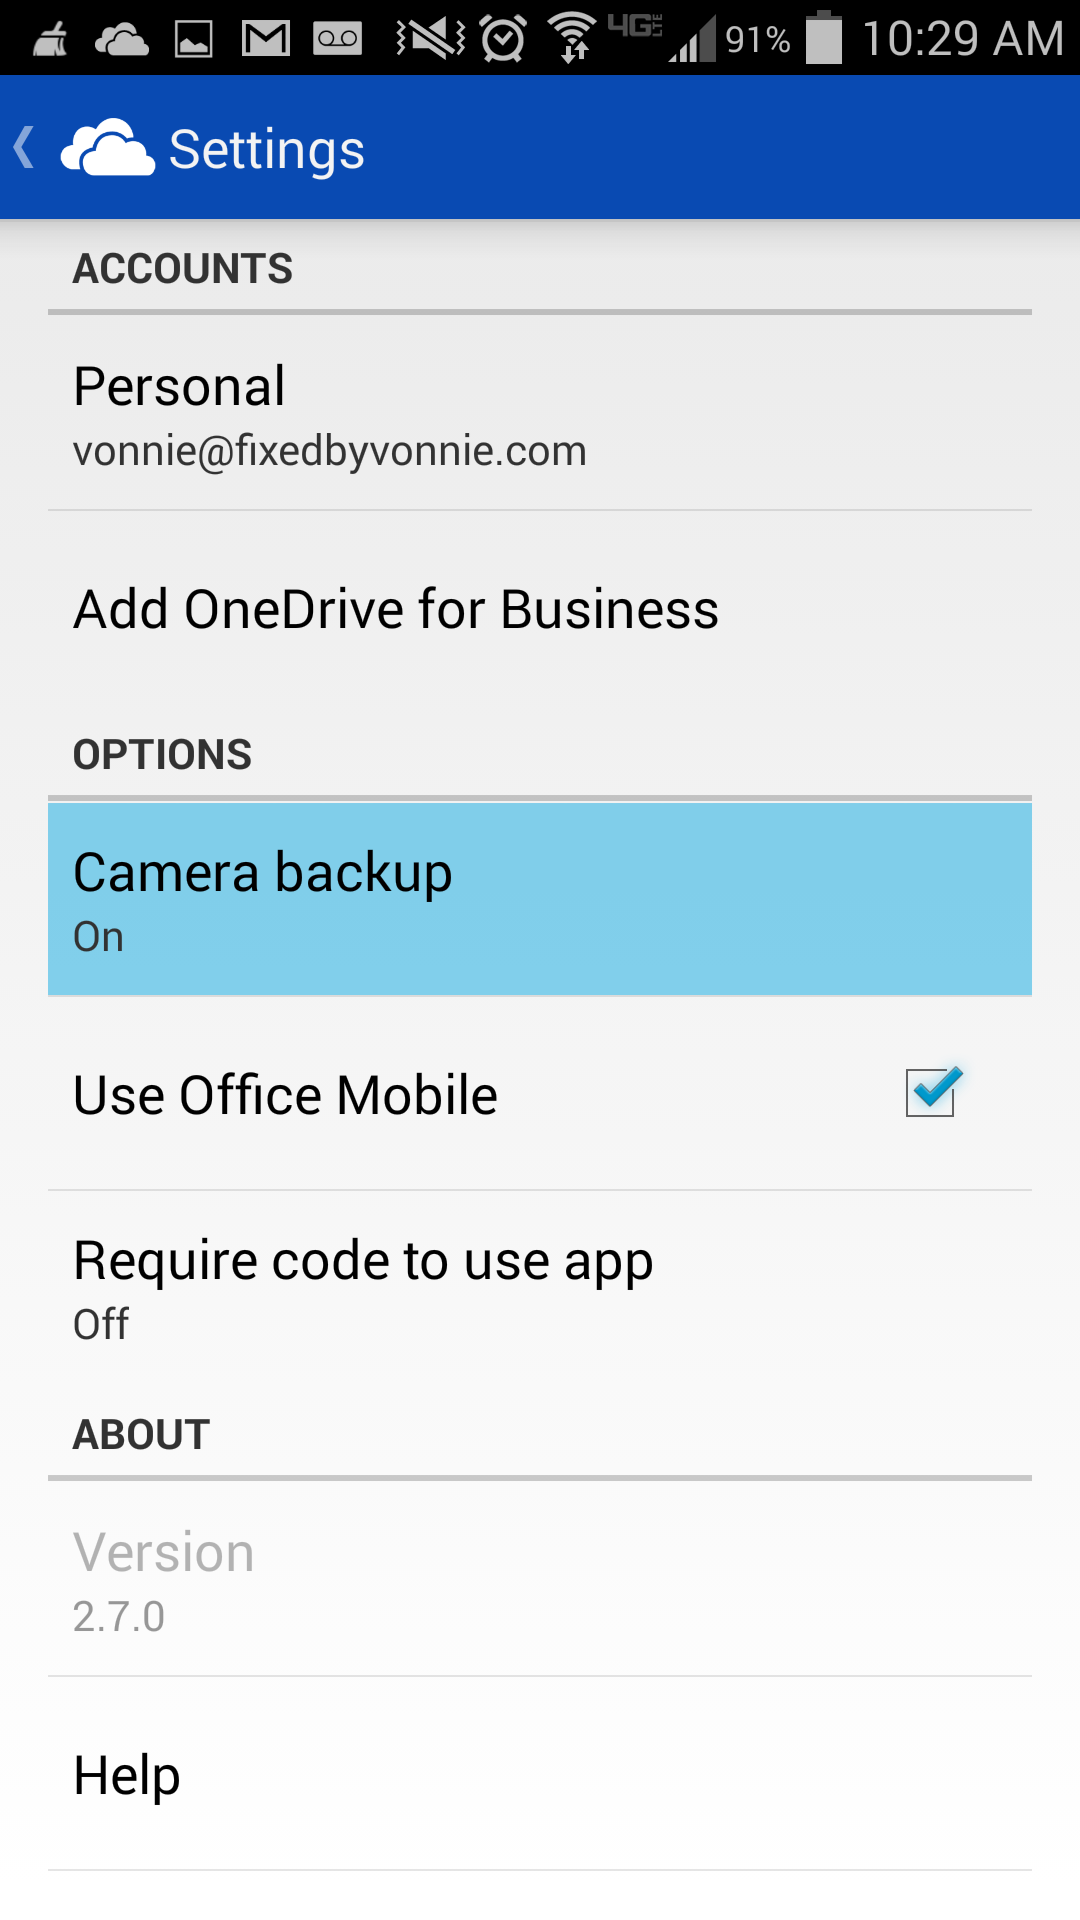 OneDrive camera backup is On